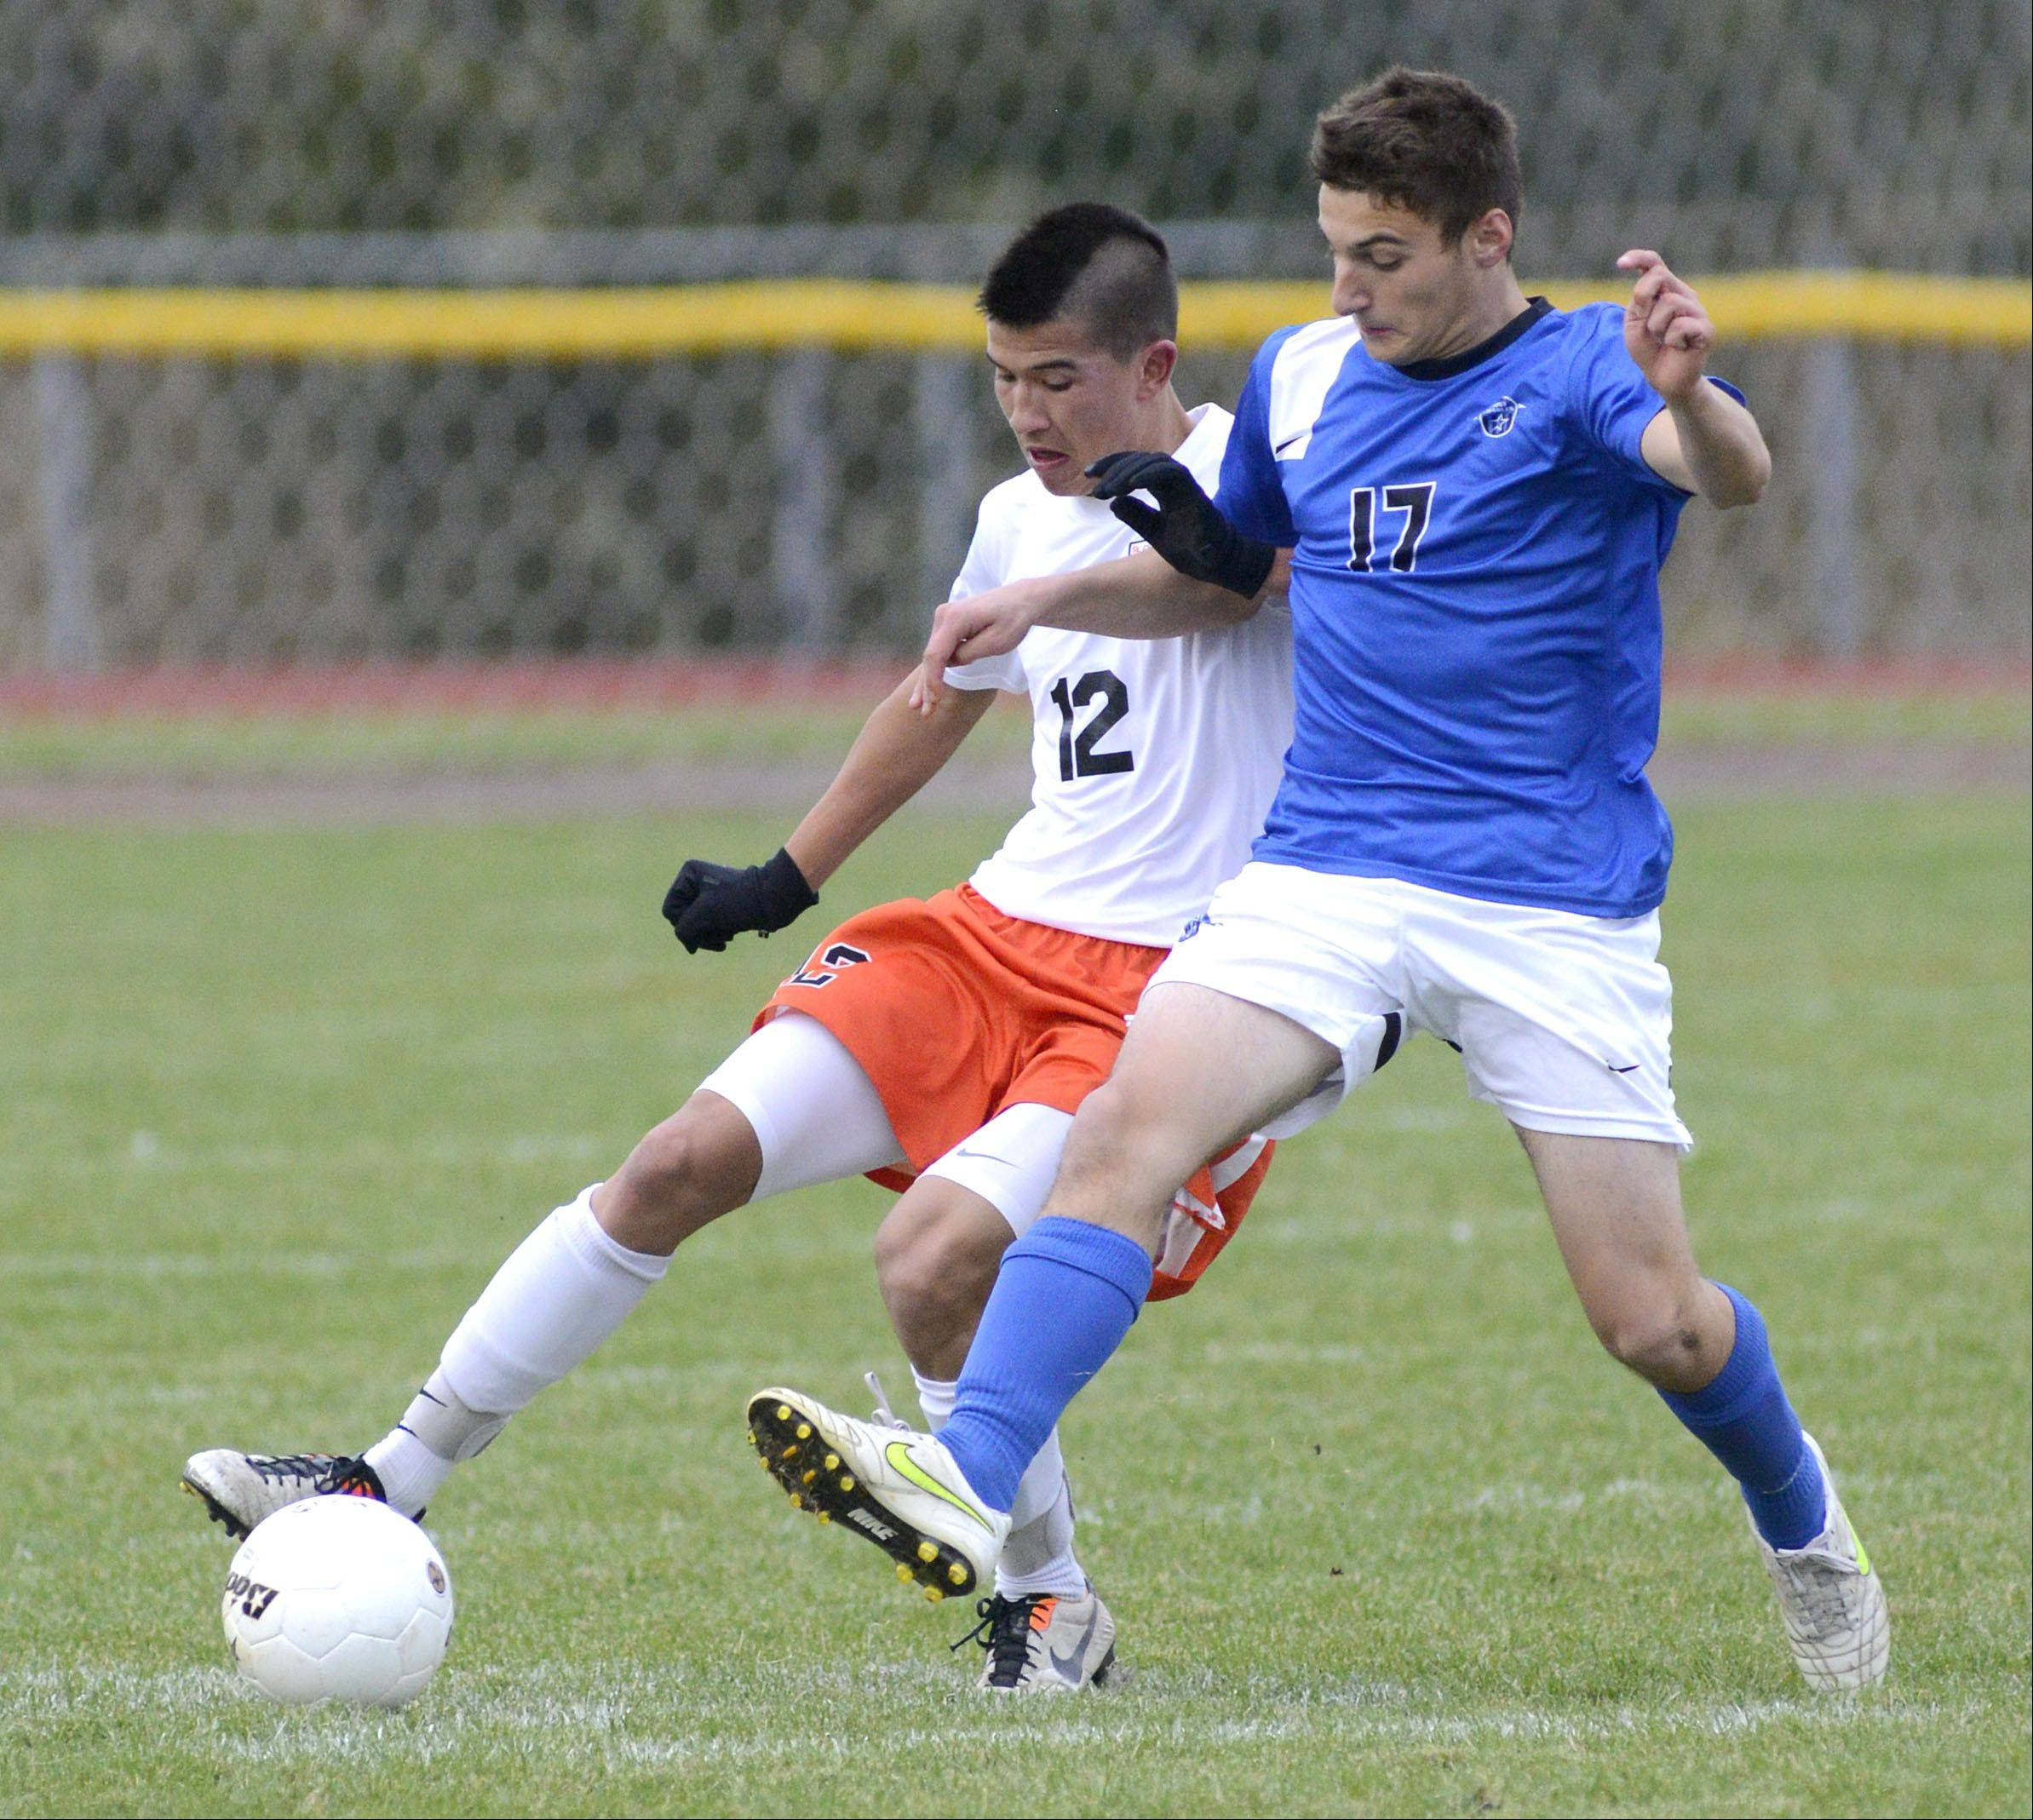 St. Charles East's Brandon Villanueva and St. Charles North's Matt Picinich battle for the ball in the first half on Wednesday, October 23.